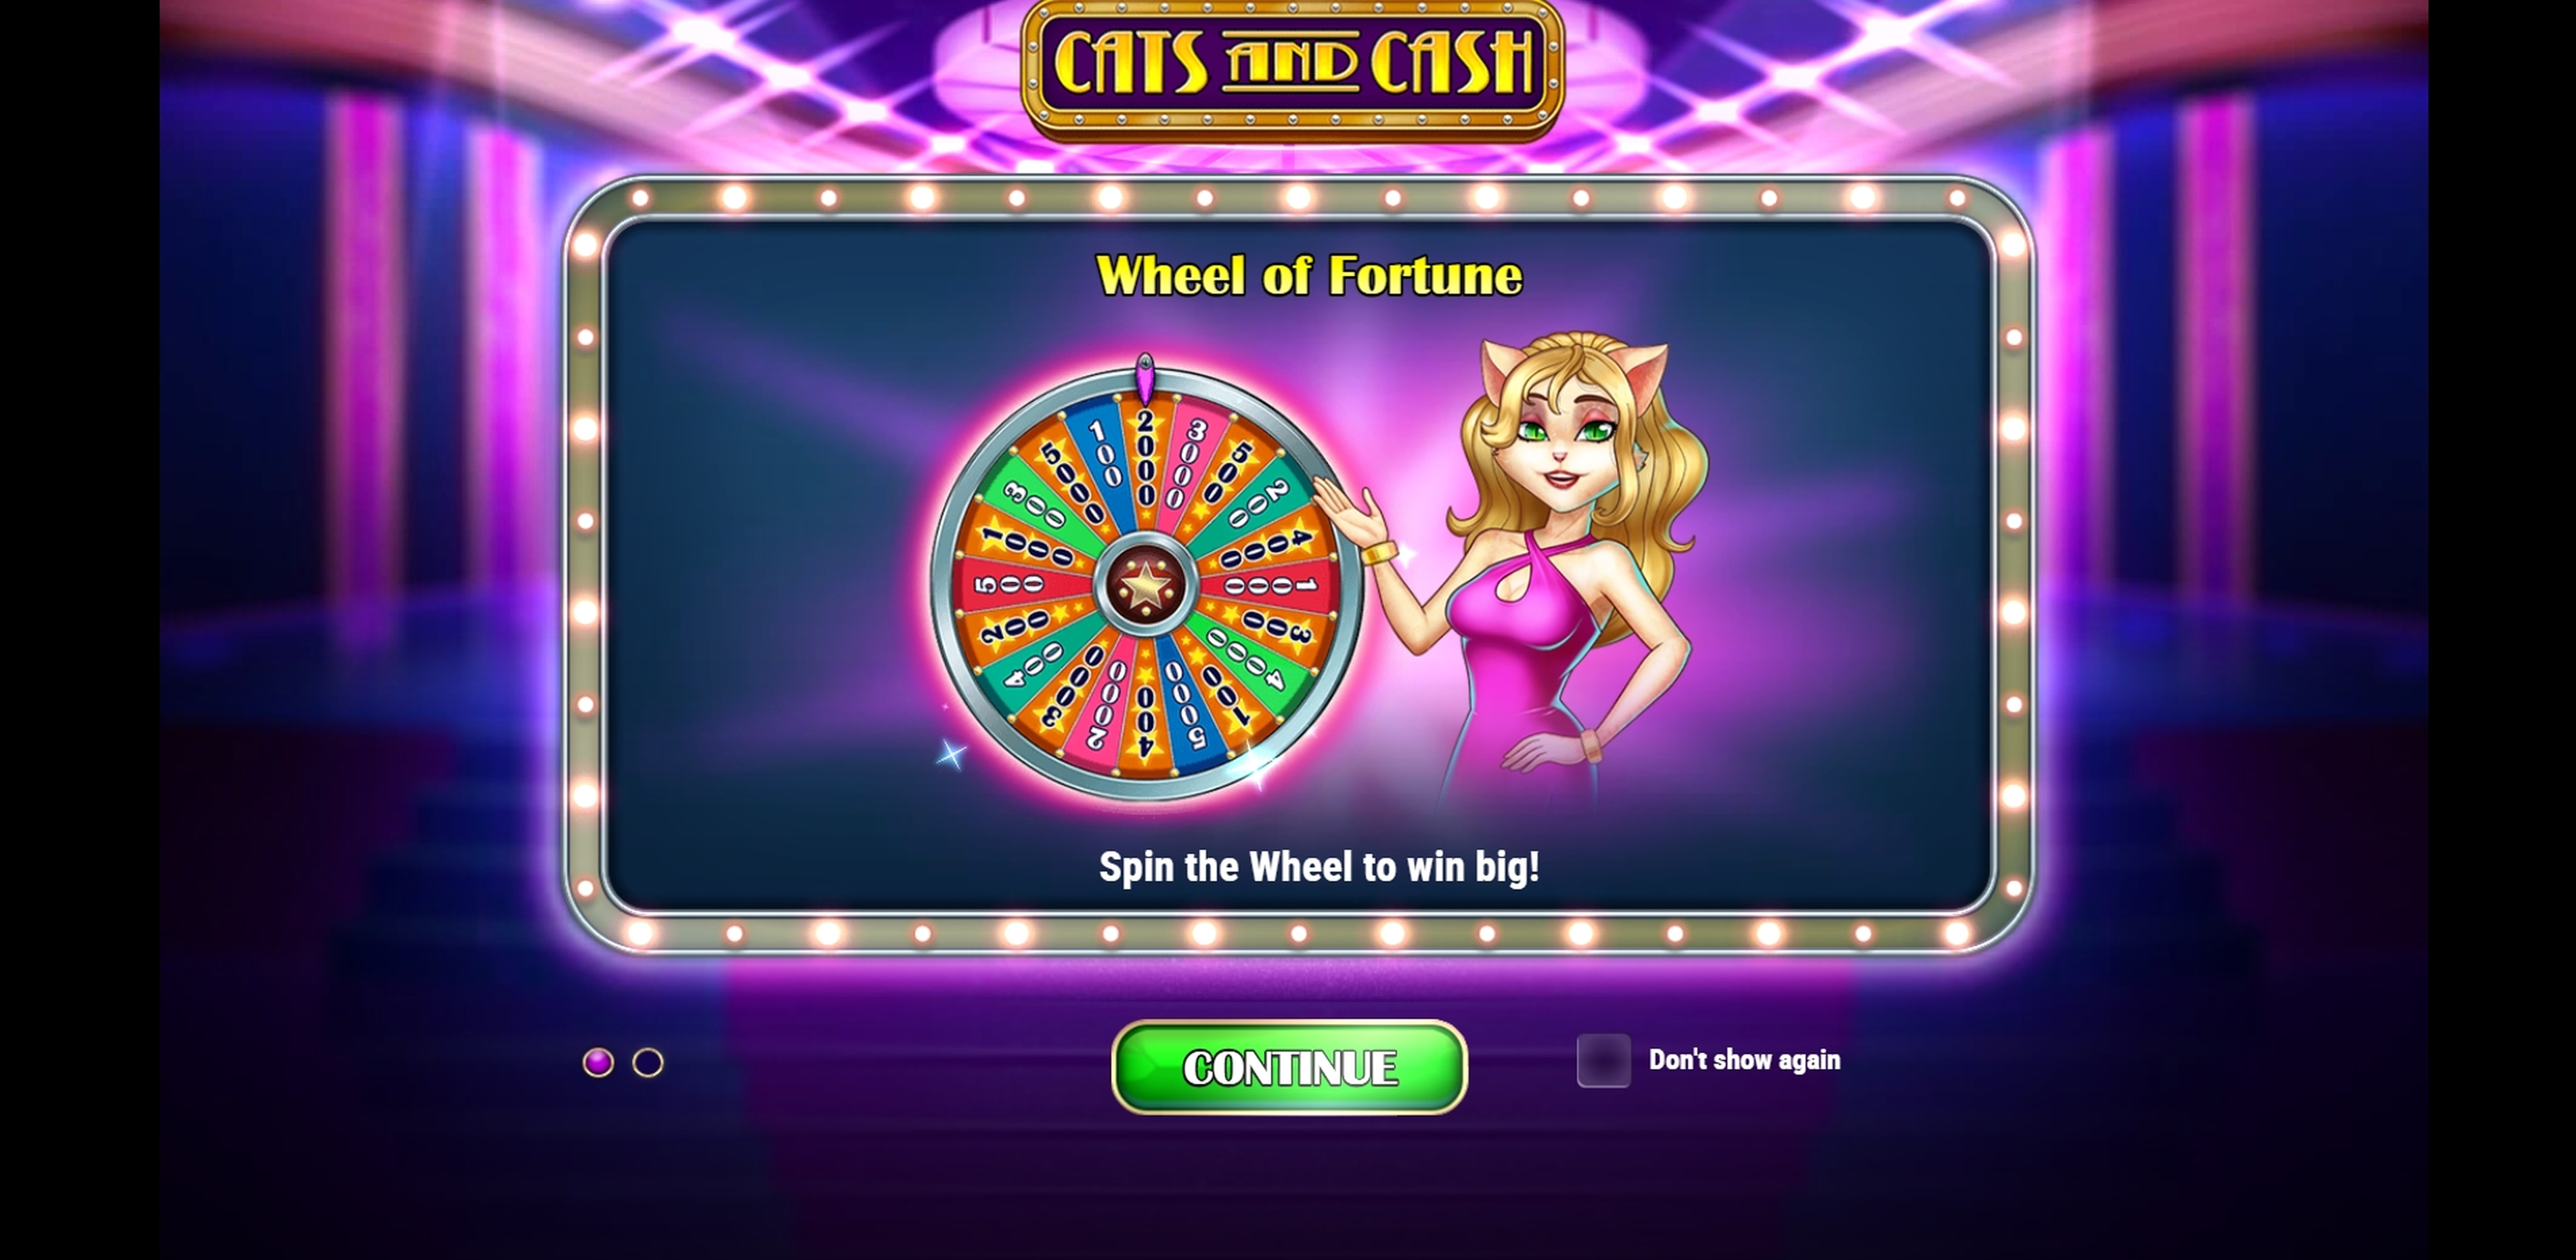 Play Cats and Cash Free Casino Slot Game by Playn GO